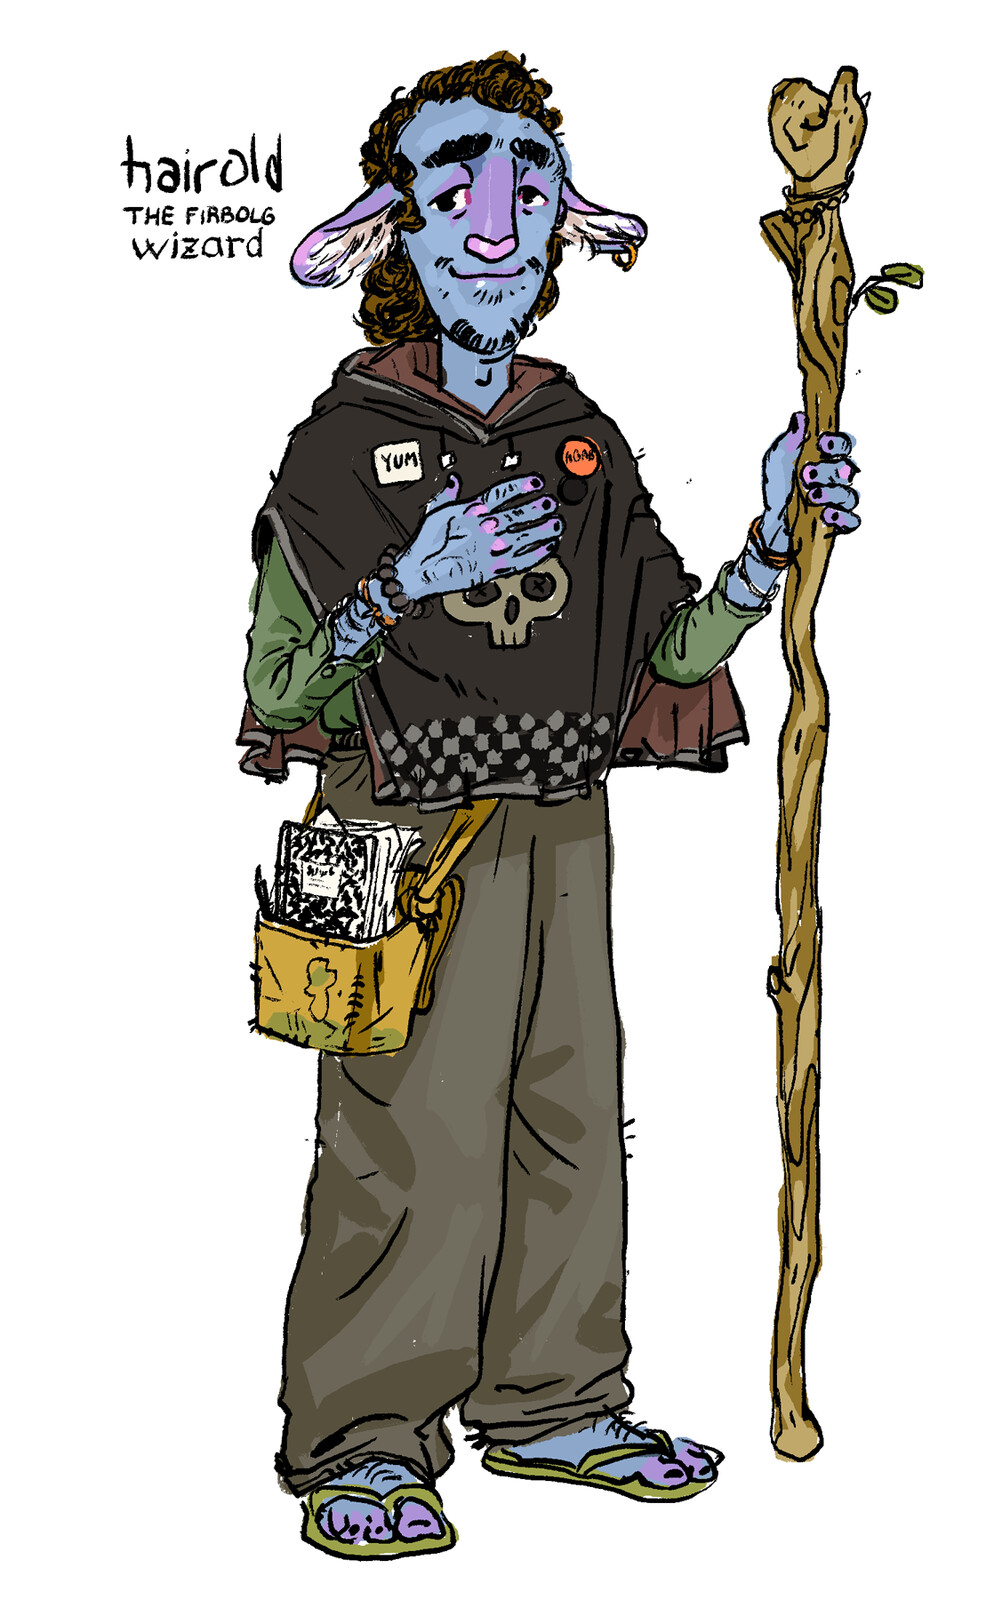 Hairold -- Firbolg Necromancer